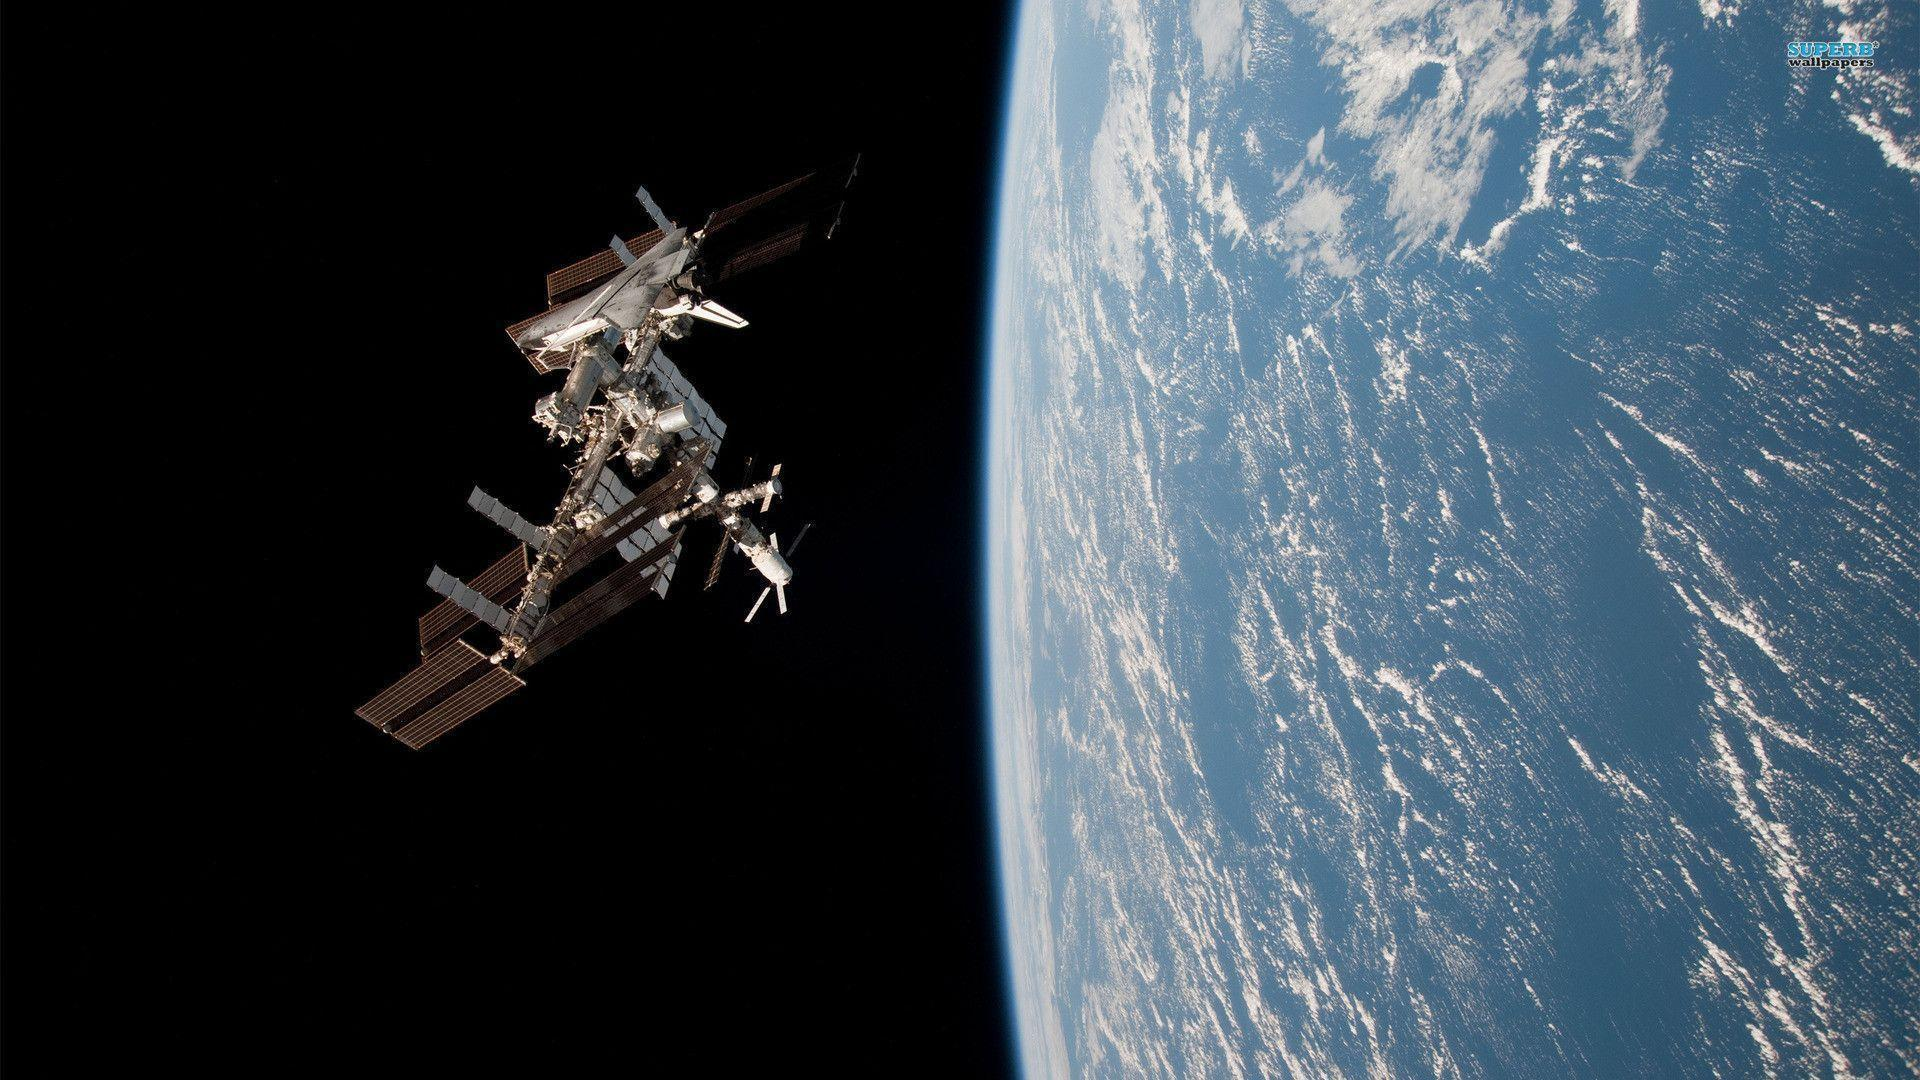 International Space Station - Wallpaper Cave